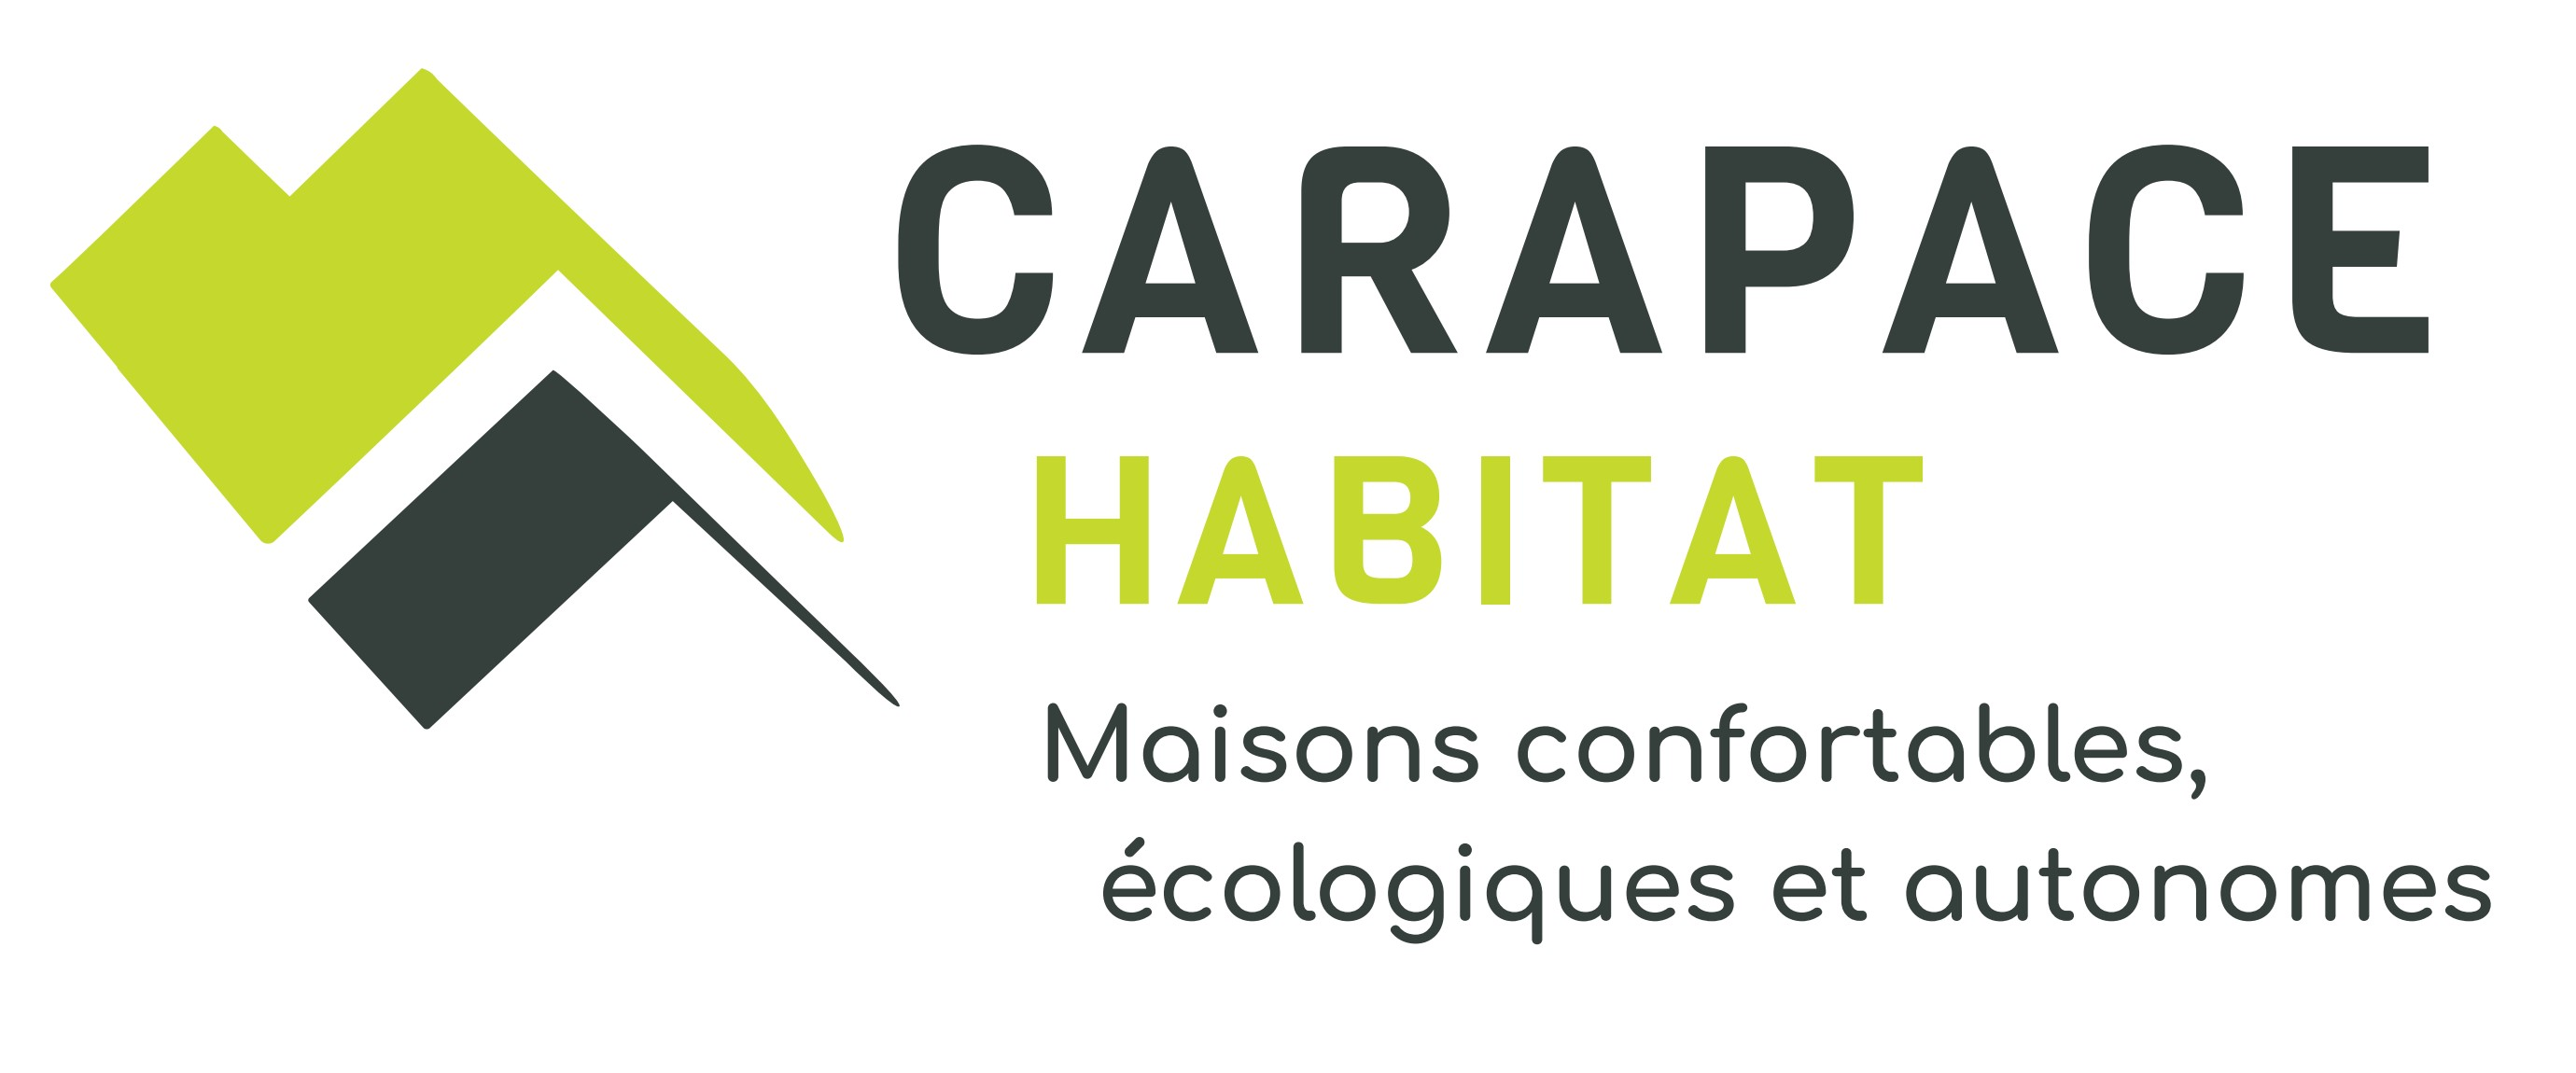 Conception Bioclimatique Carapace Habitat